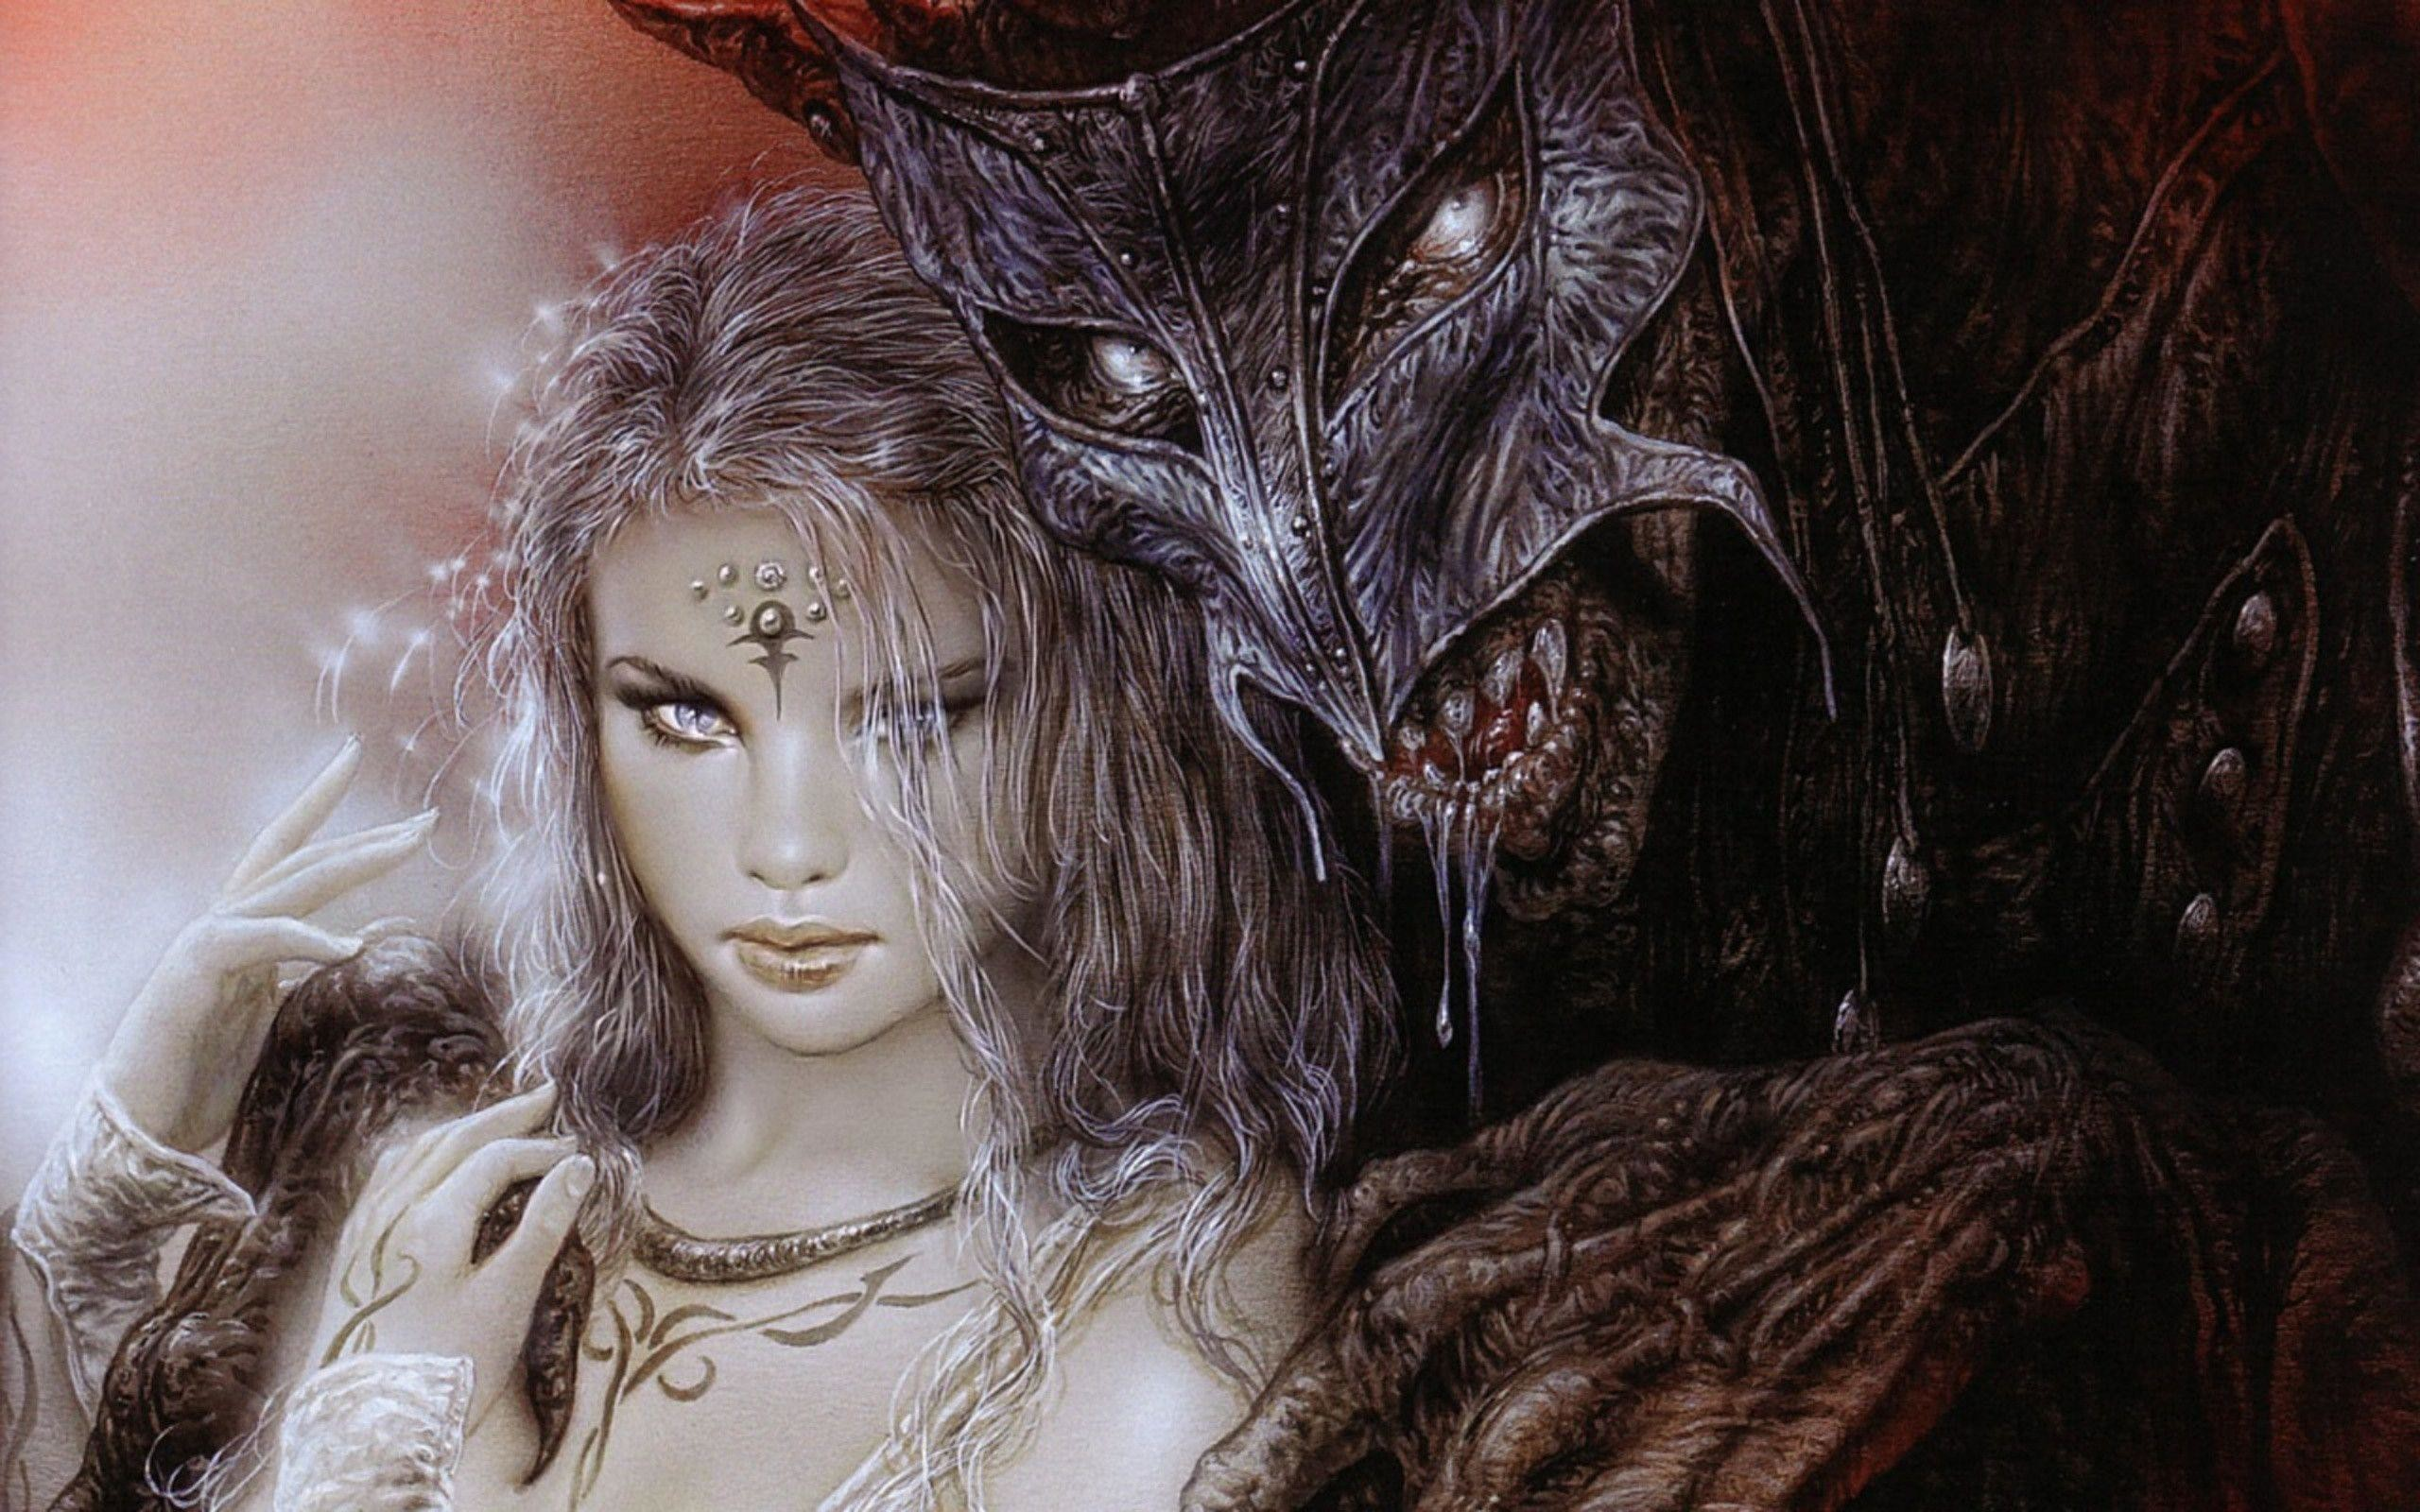 Res: 2560x1600, Lady and Demon - Luis Royo Wallpaper (36130603) - Fanpop